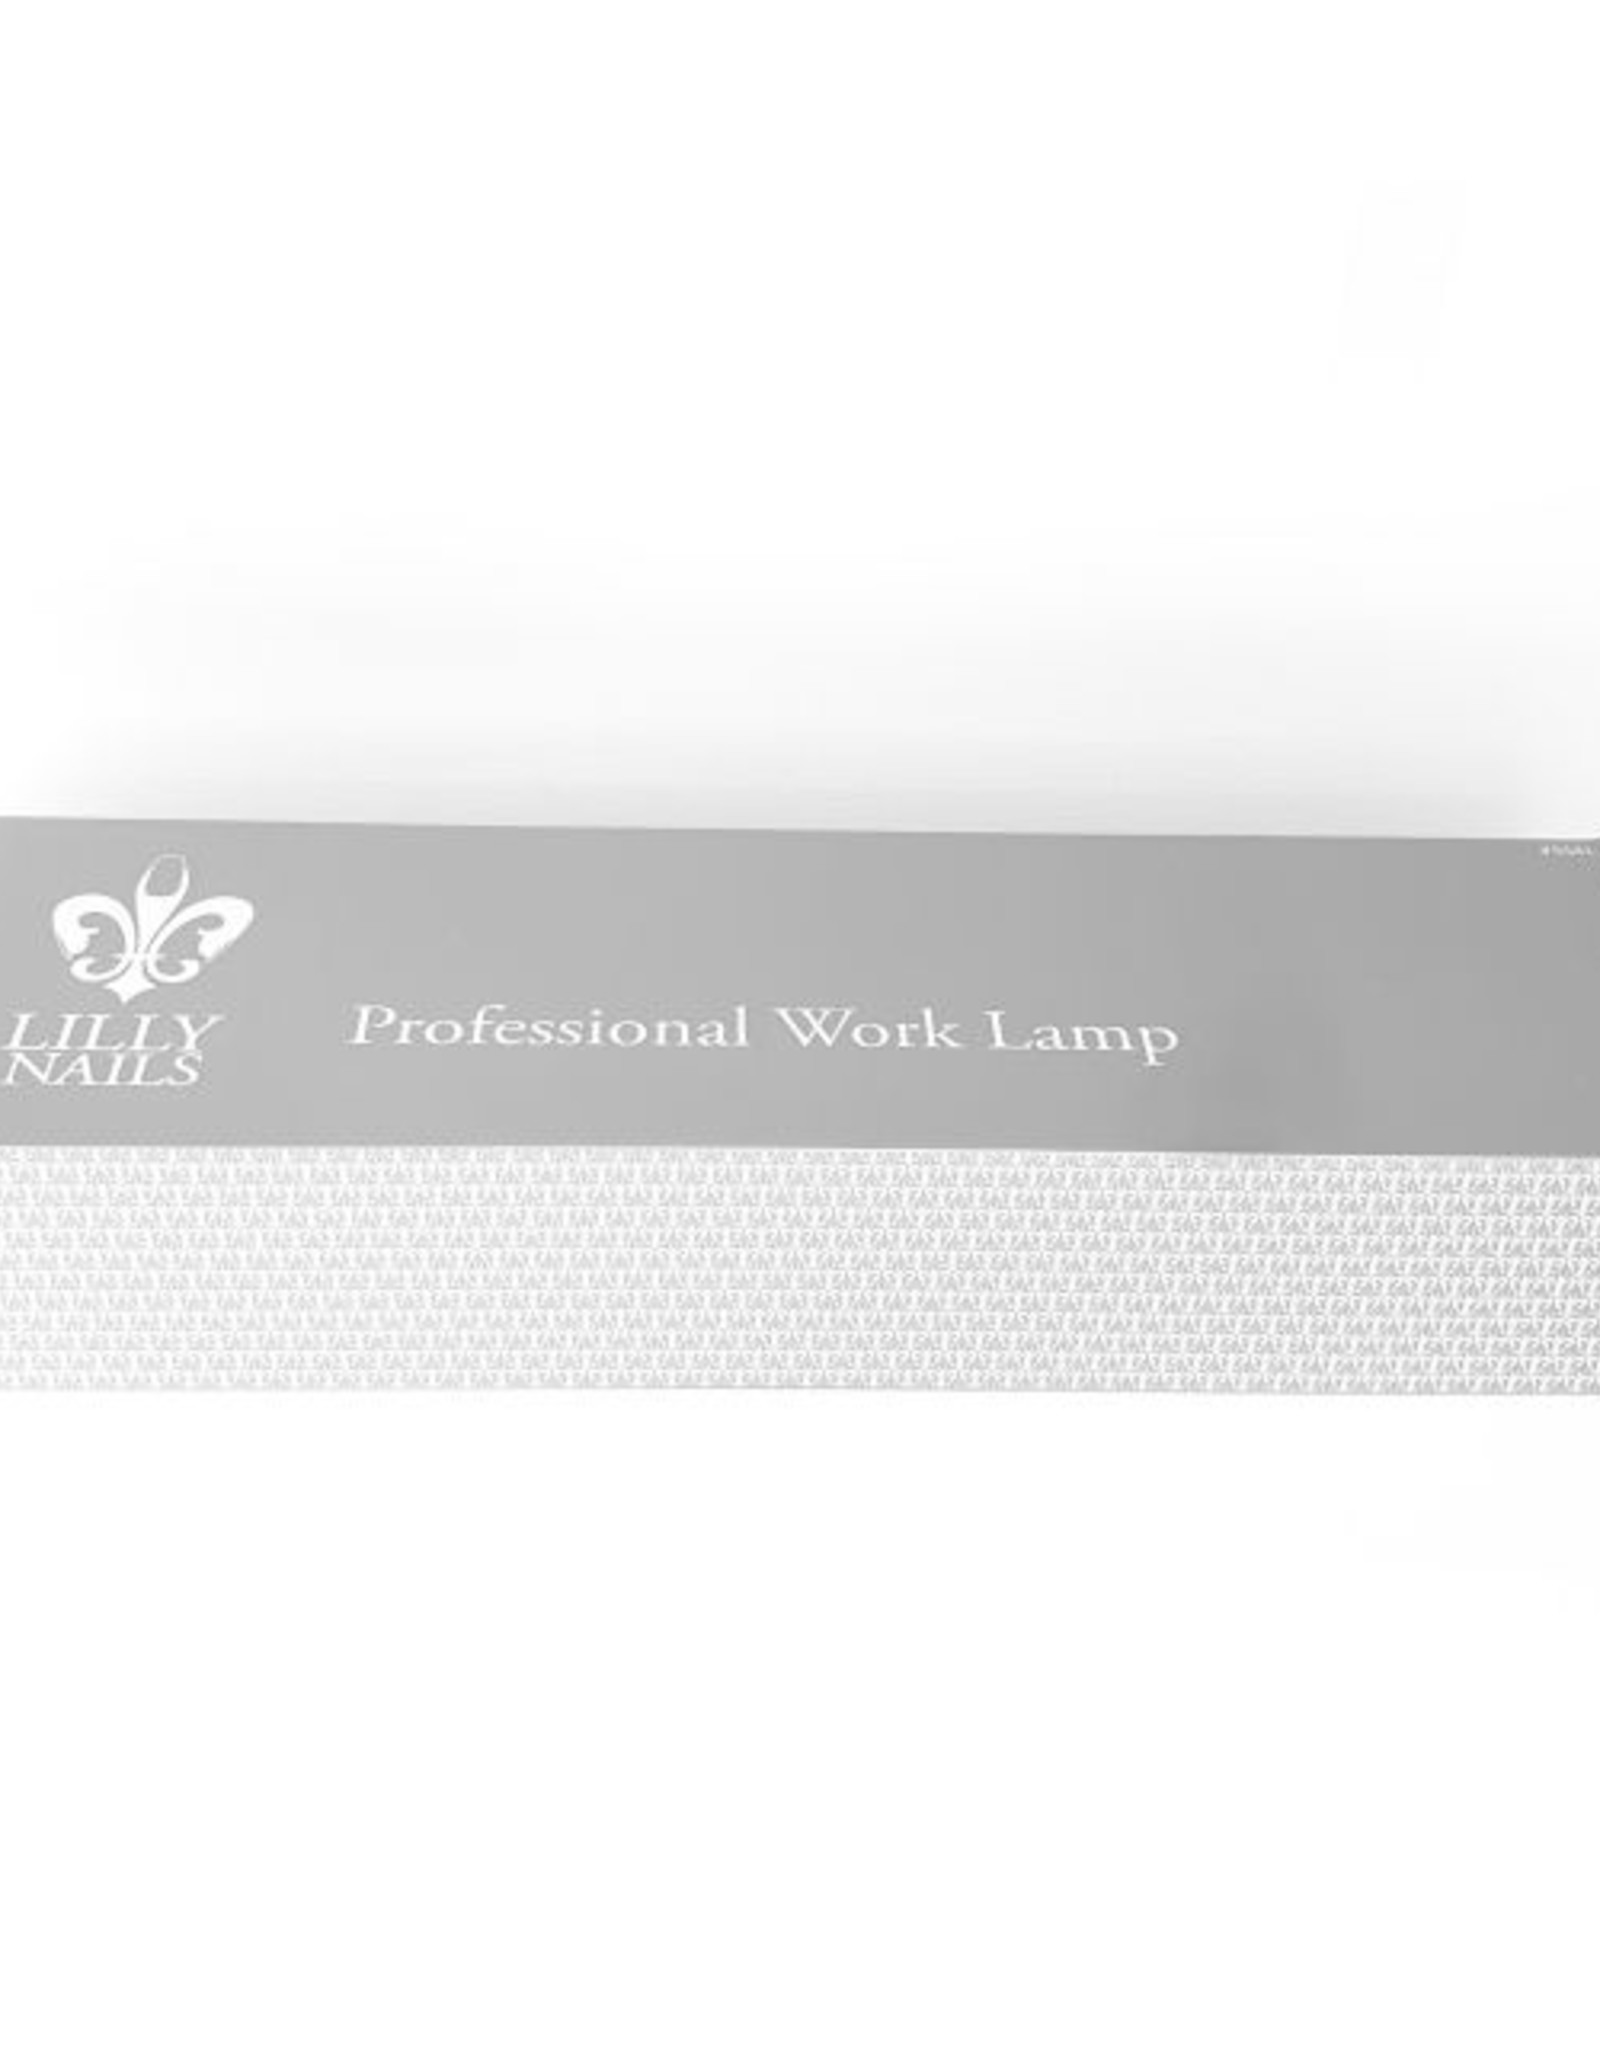 Lilly Nails work lamp